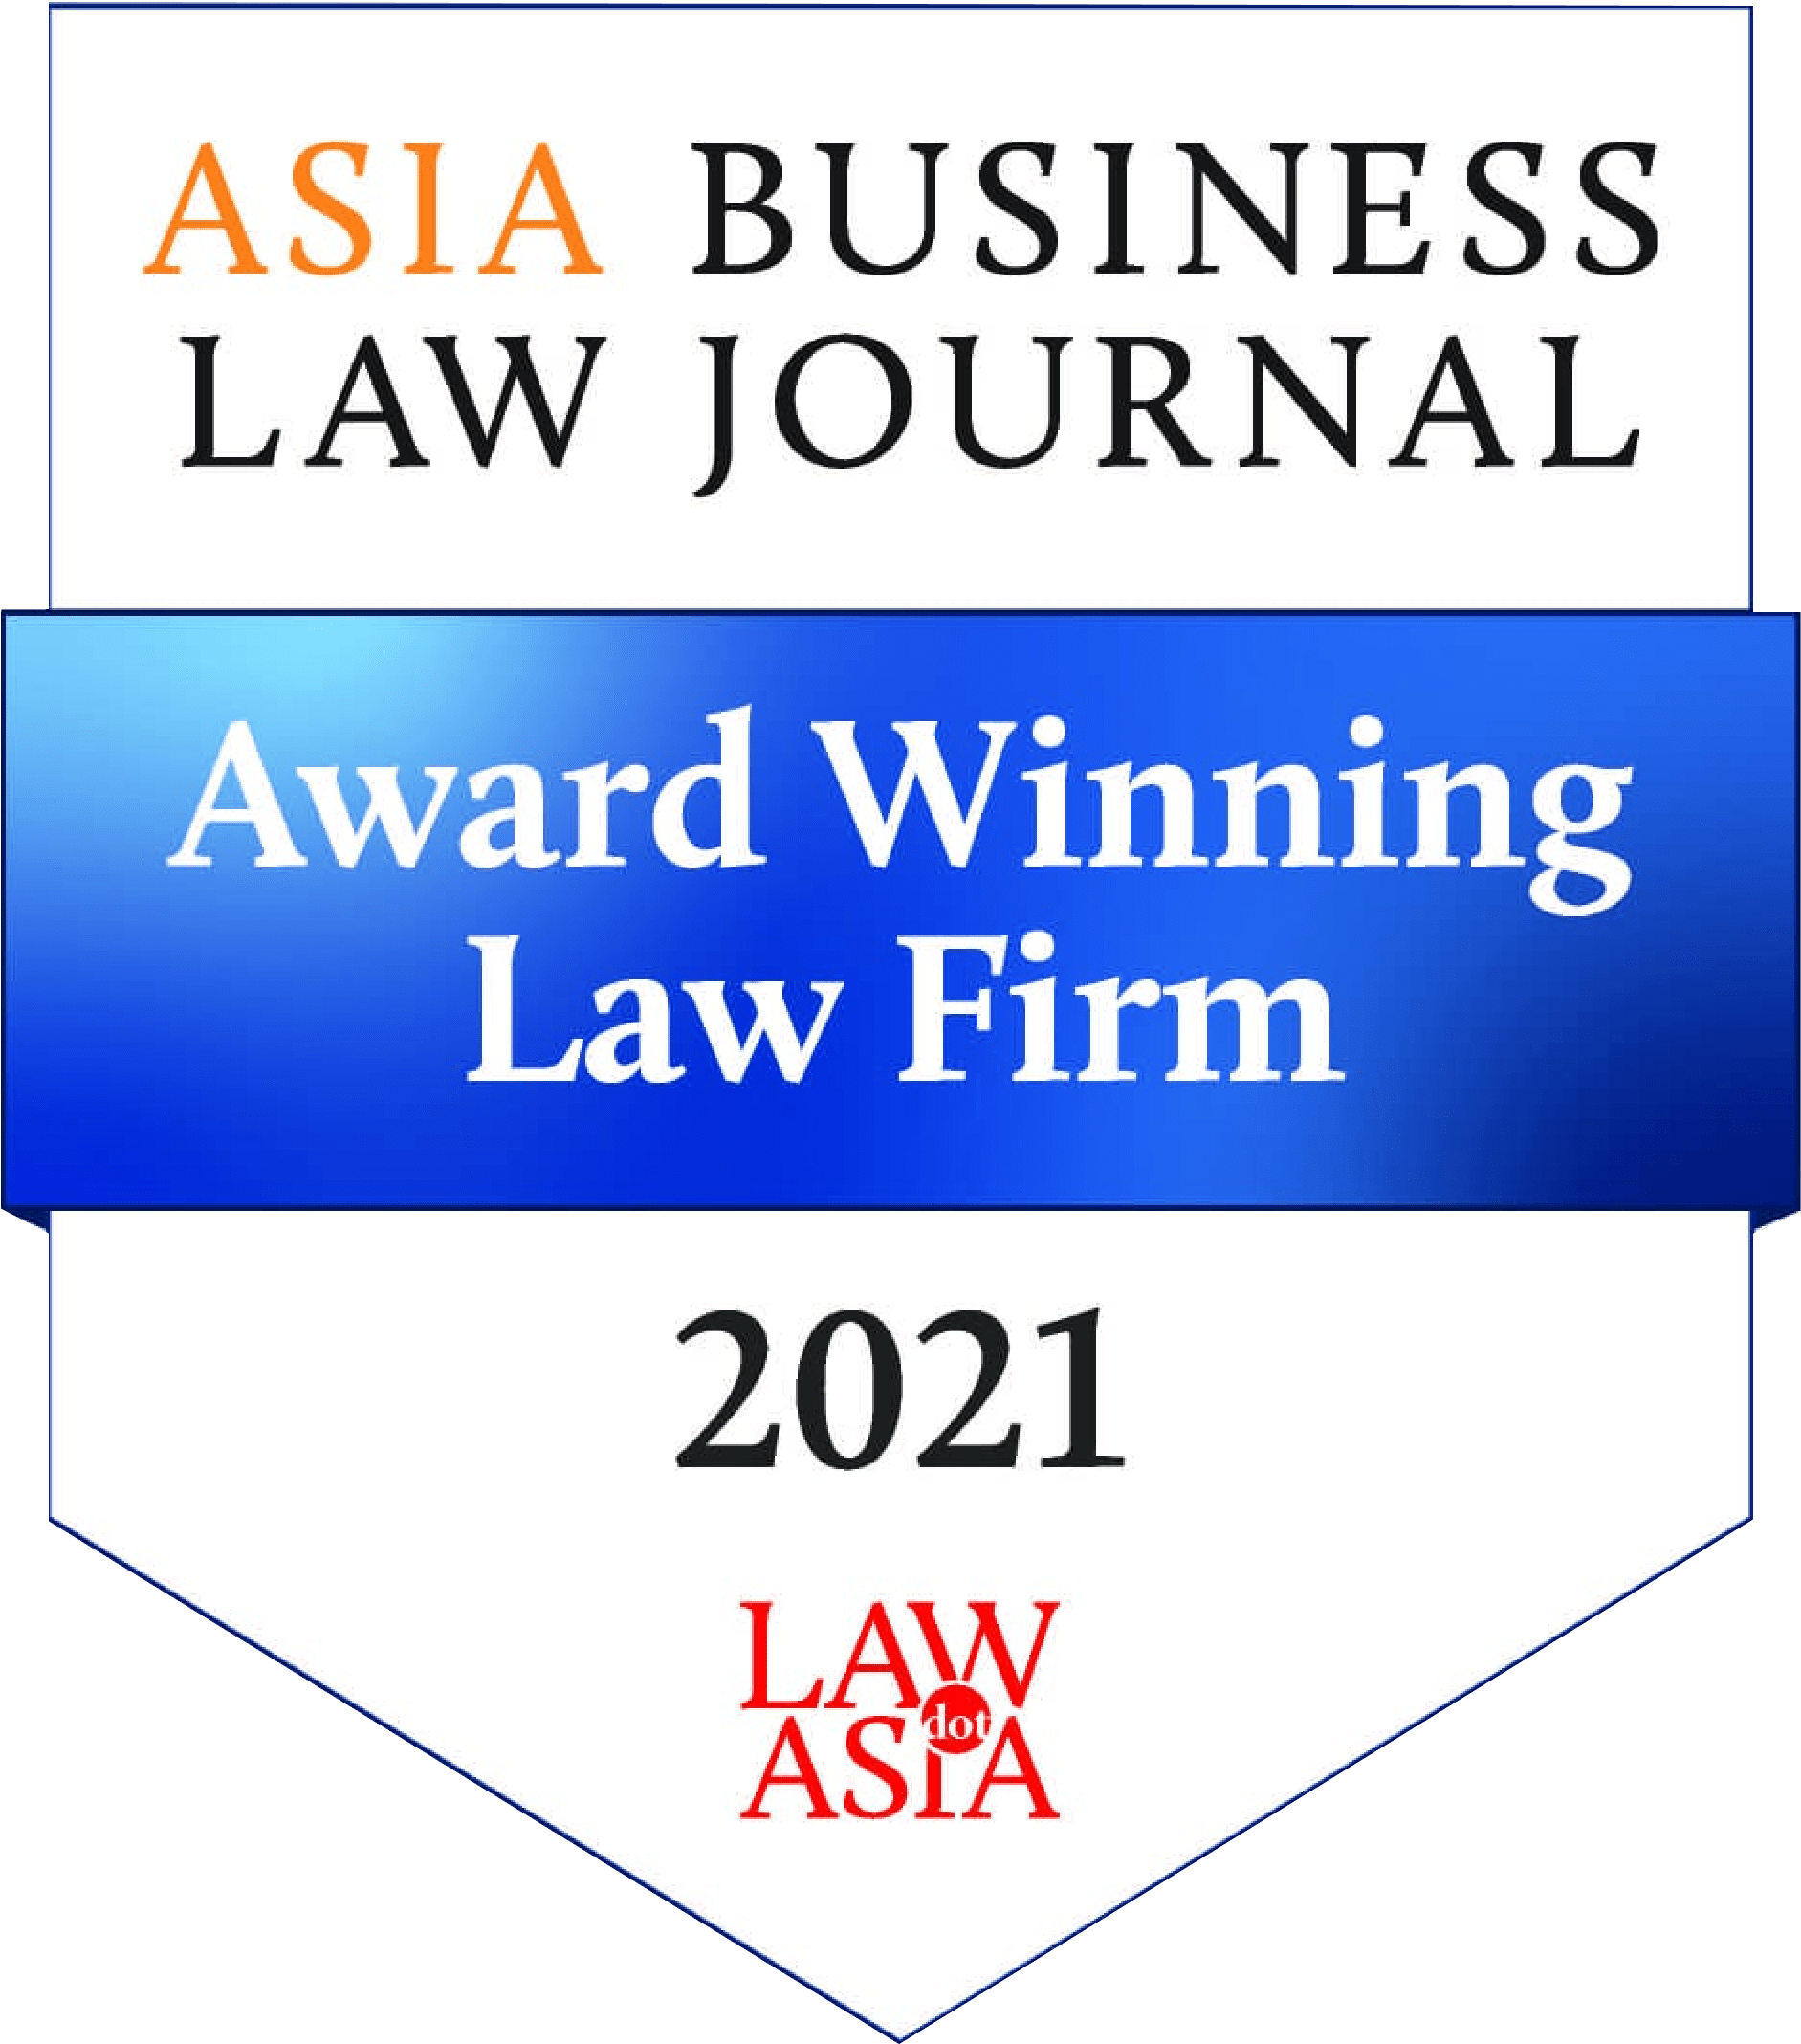 https://res.cloudinary.com/iabfcdn/image/upload/q_auto:best/v1631879780/asiabusiness-law.png1